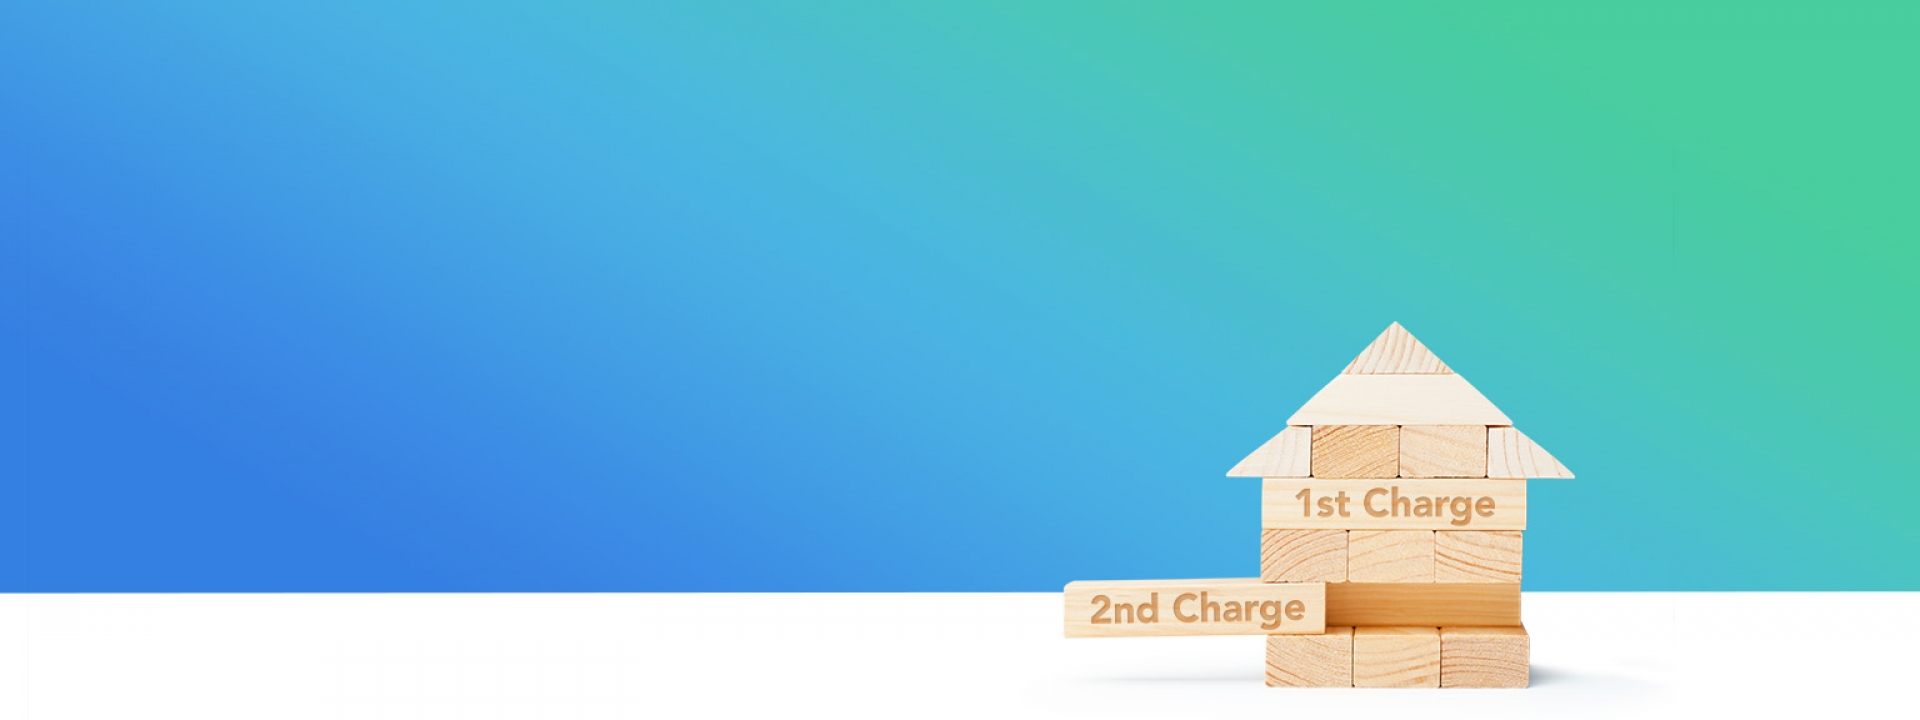 Second Charge Bridging Loan Banner